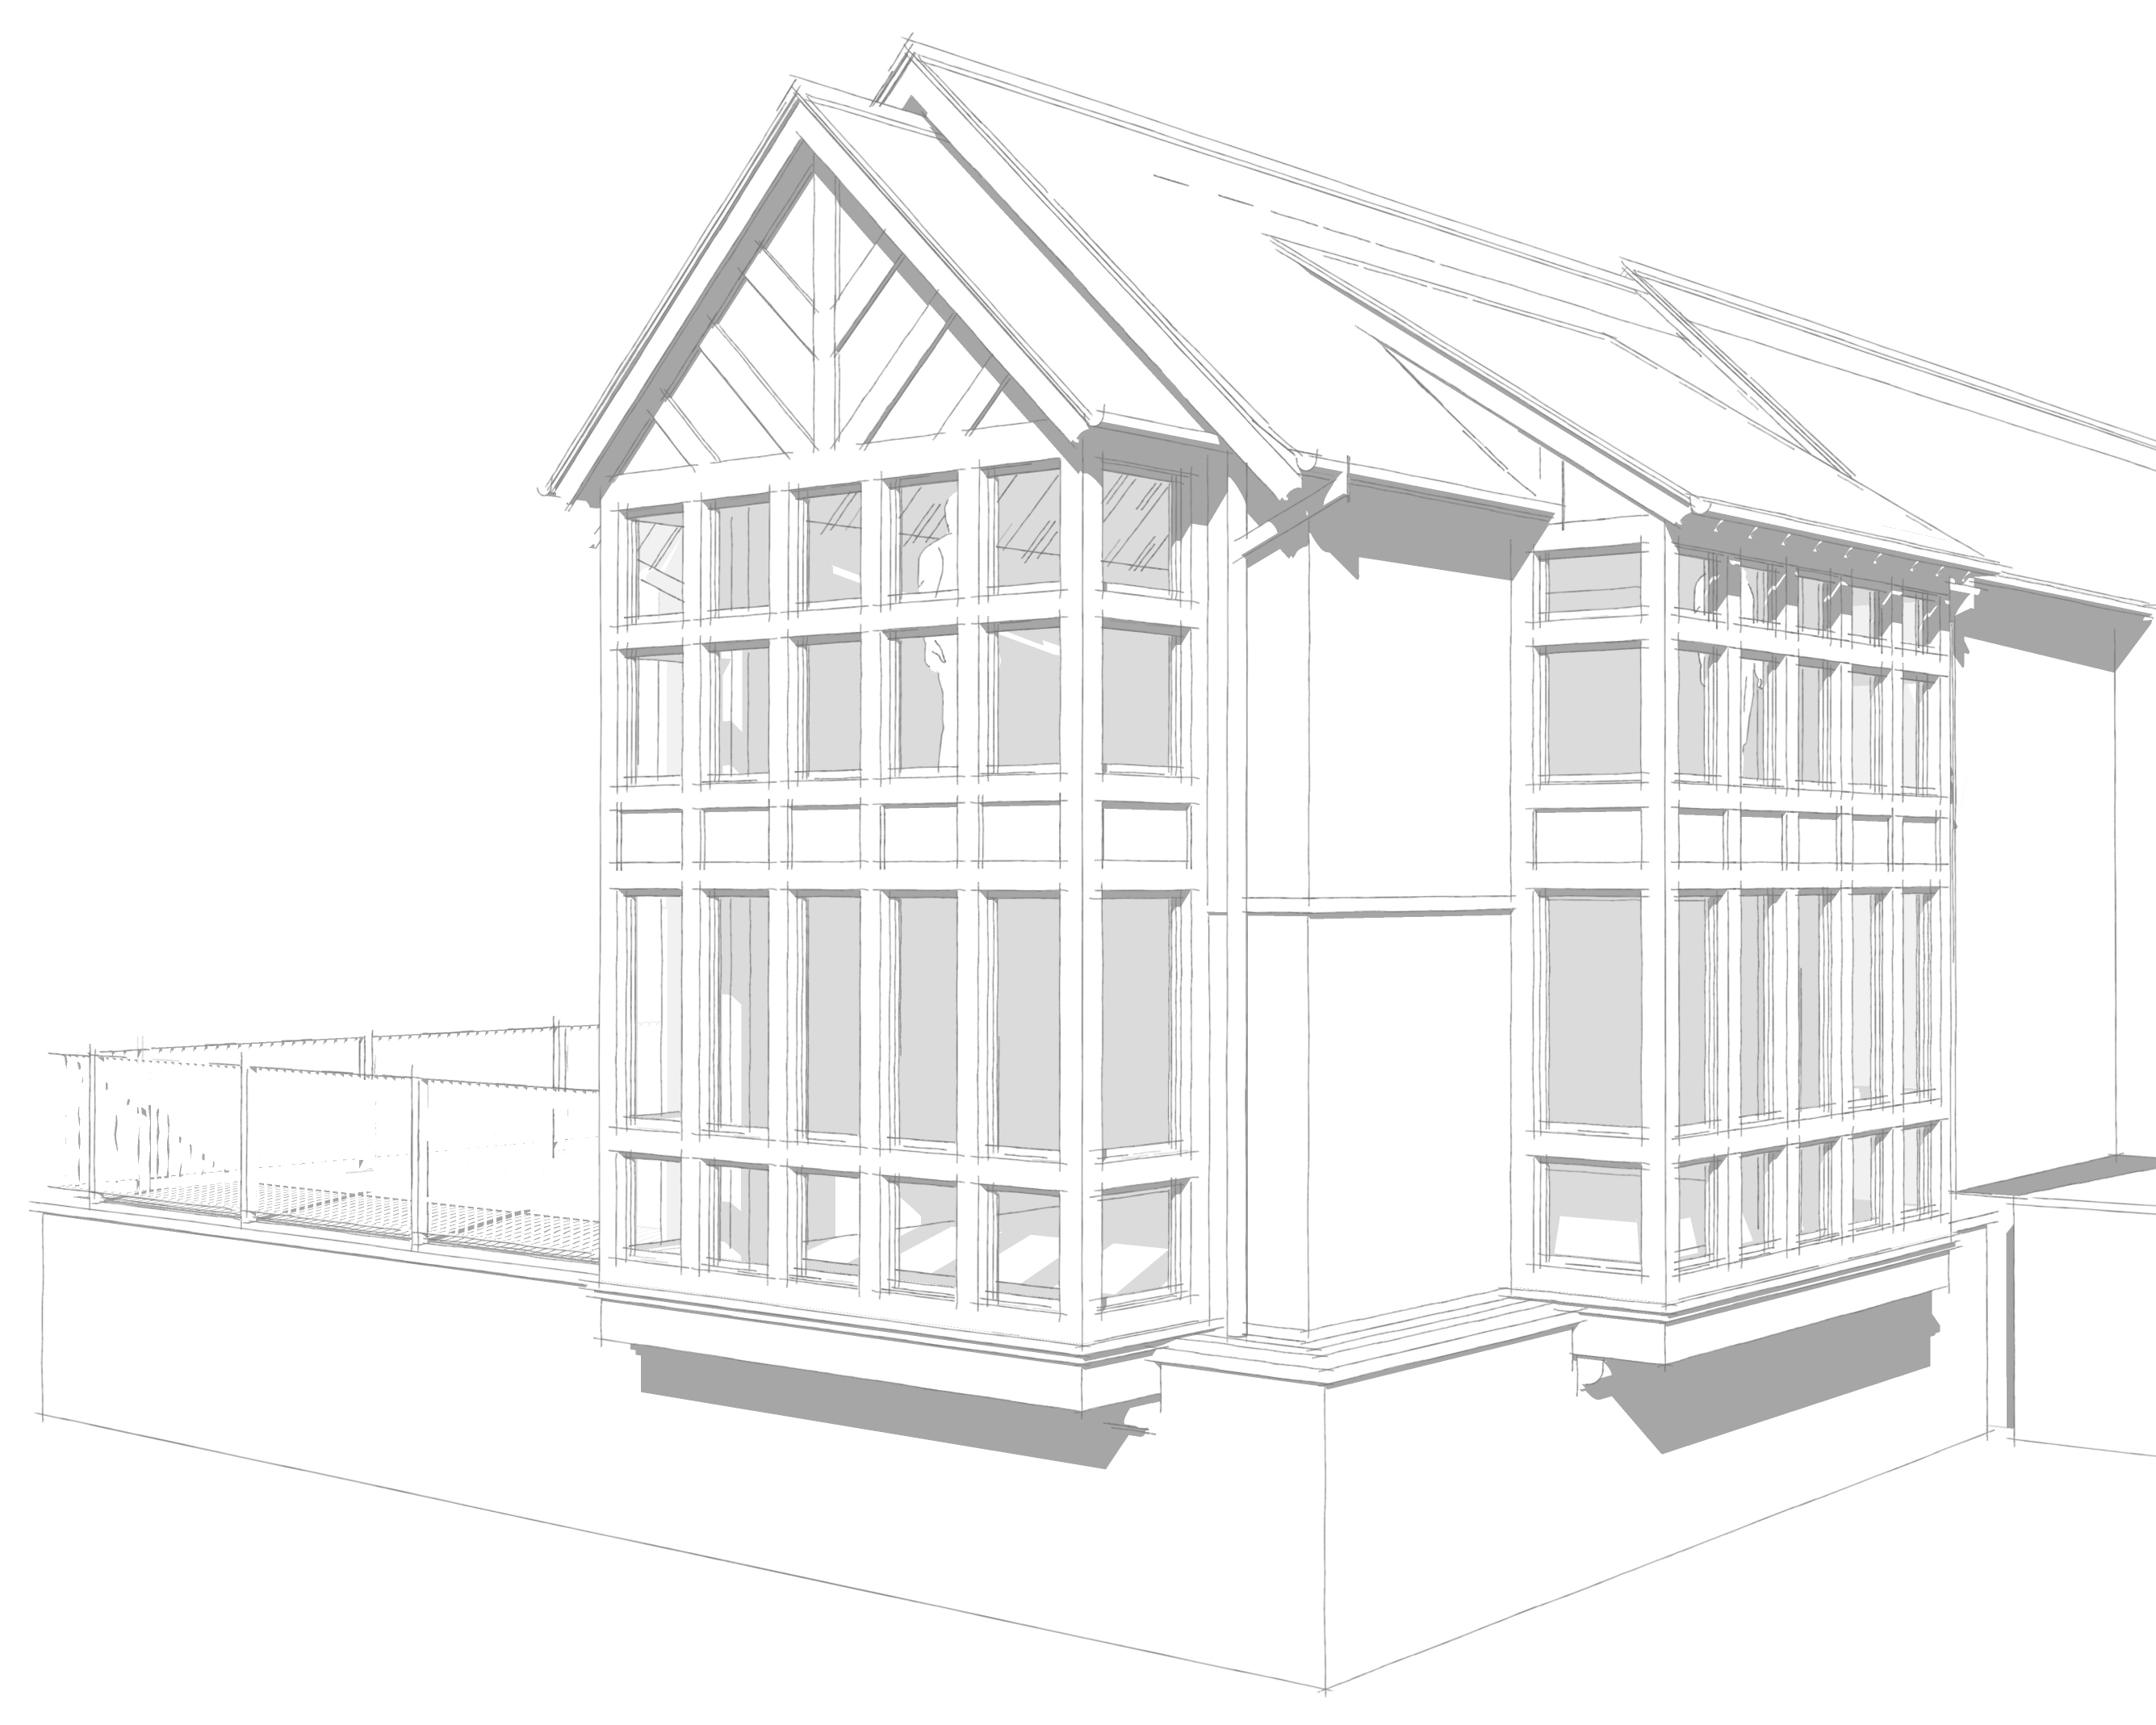 Cheshire manor house two storey extension starts on site – C Squared ...